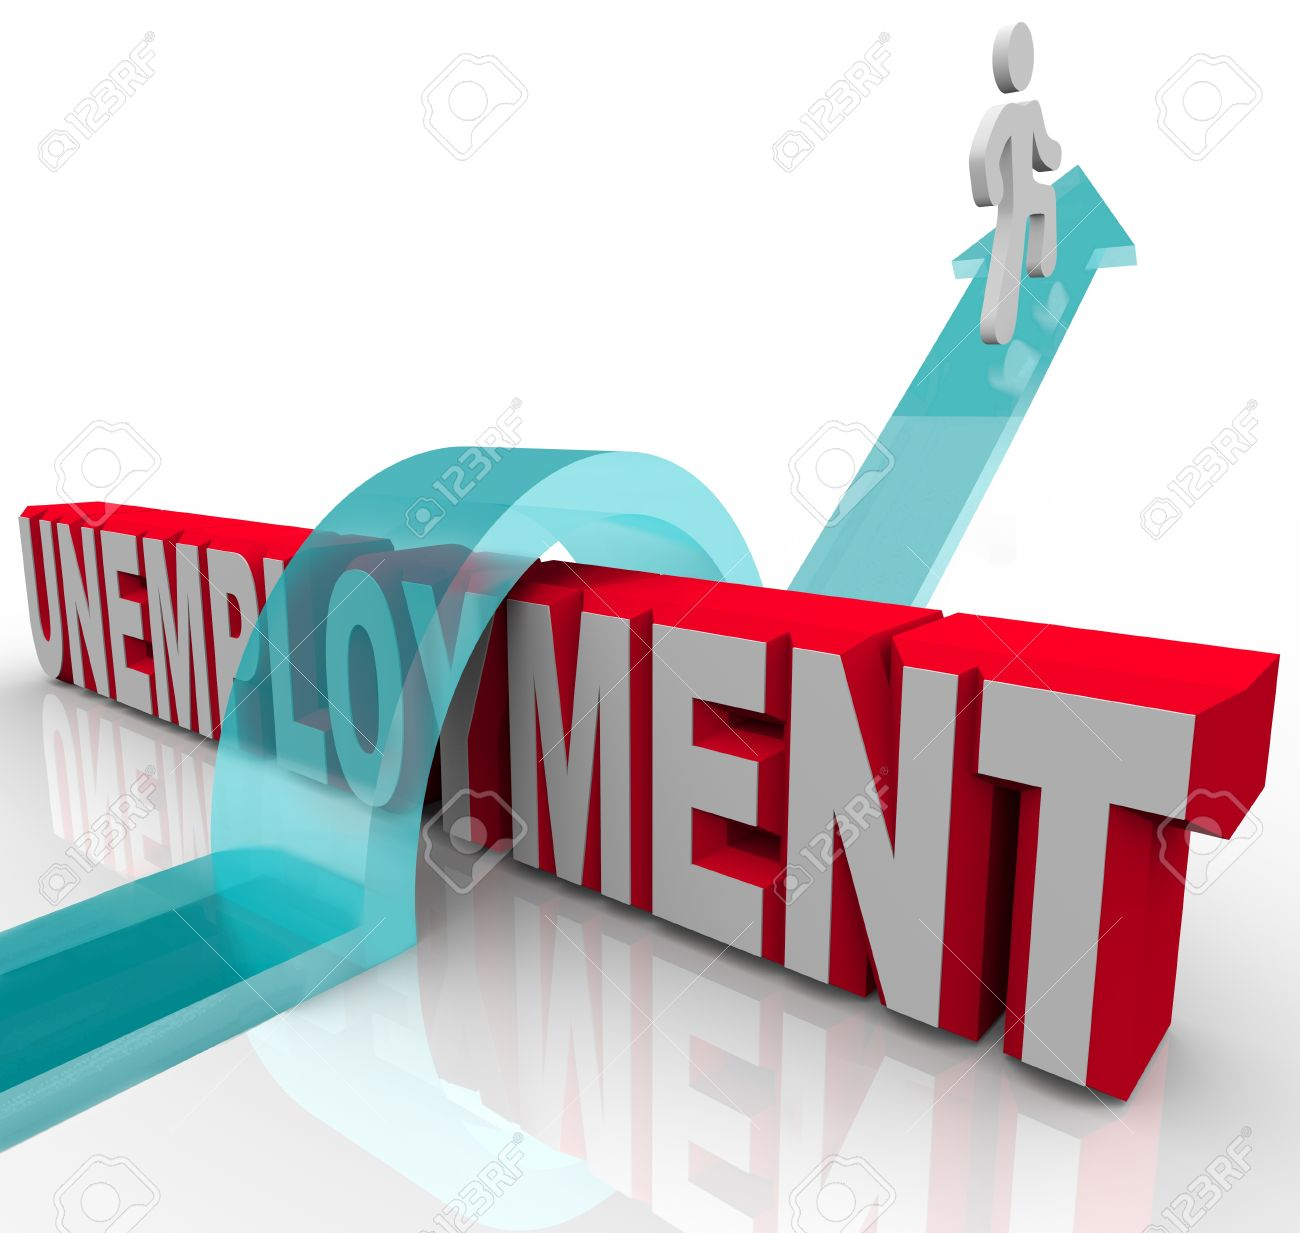 a person rises on an arrow over the word unemployment symbolizing a person rises on an arrow over the word unemployment symbolizing finding another job